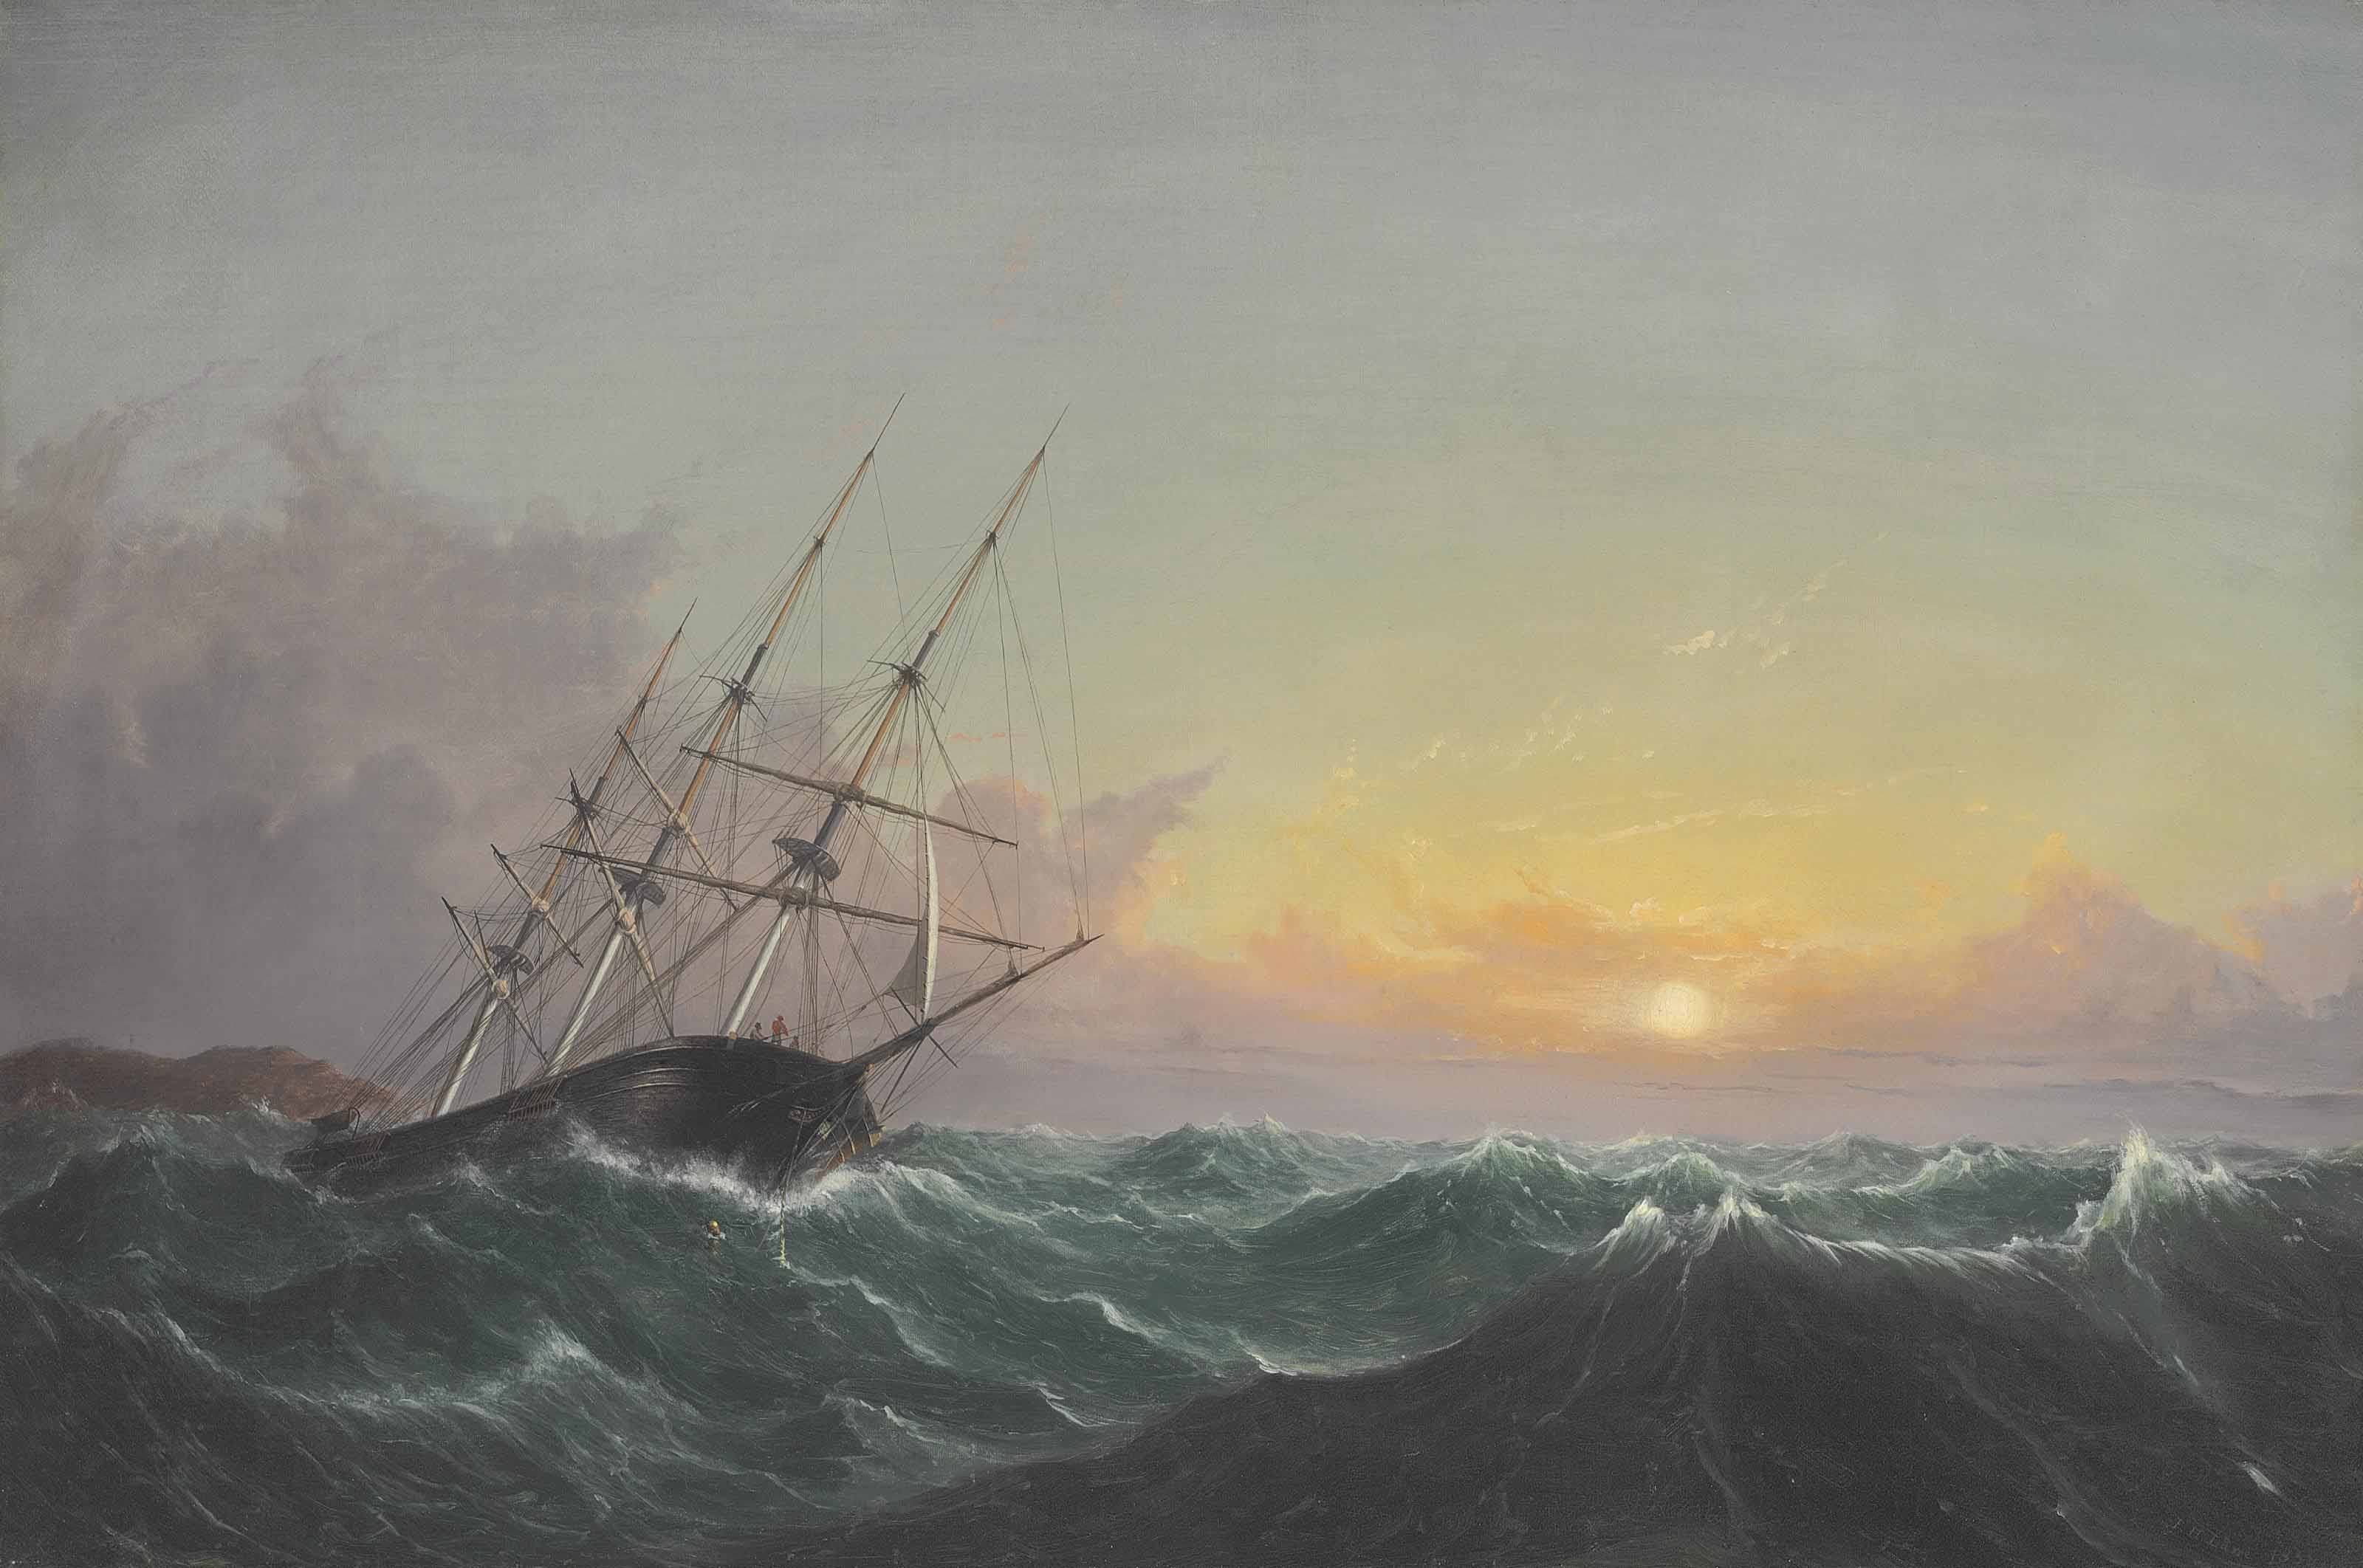 A Storm, Breaking Away, Vessel Slipping Her Cable